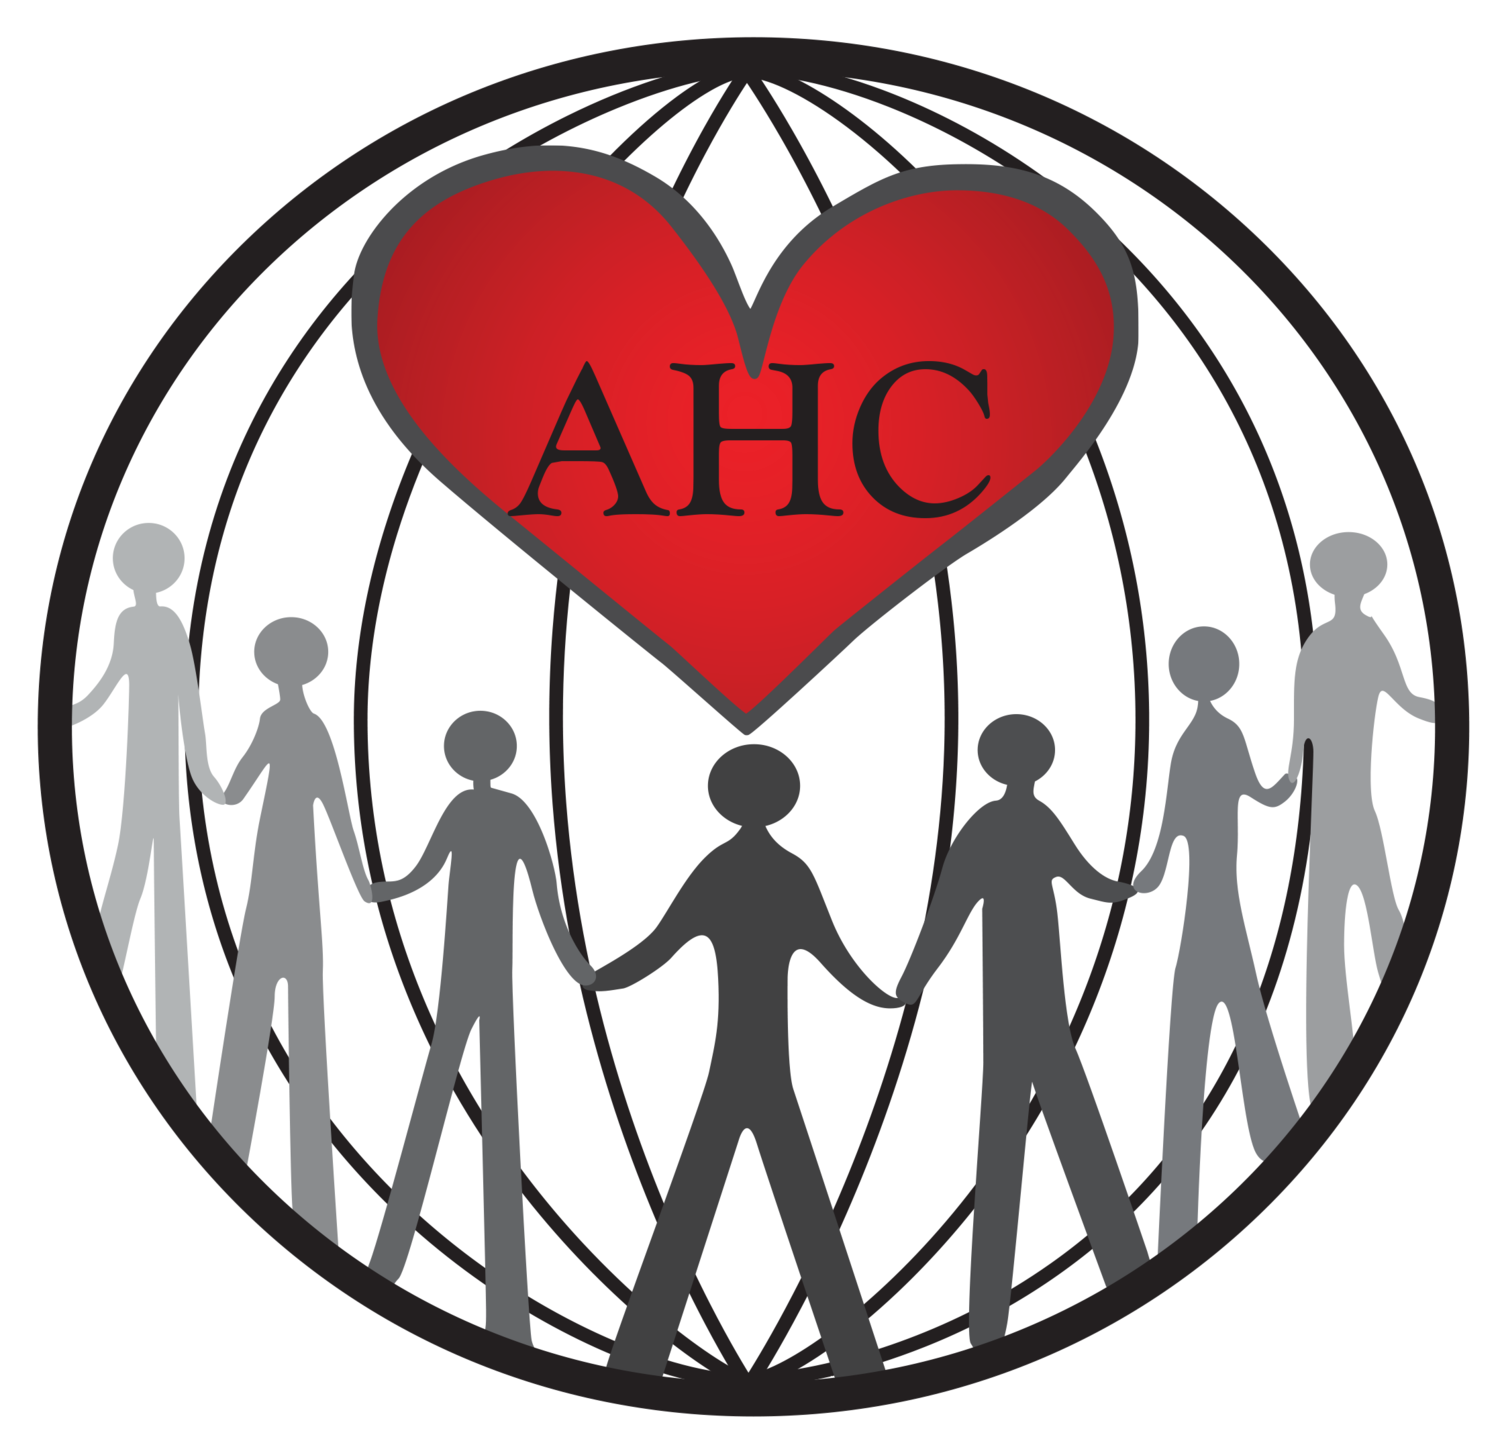 AHC –Attitudinal Healing Connection, Inc.